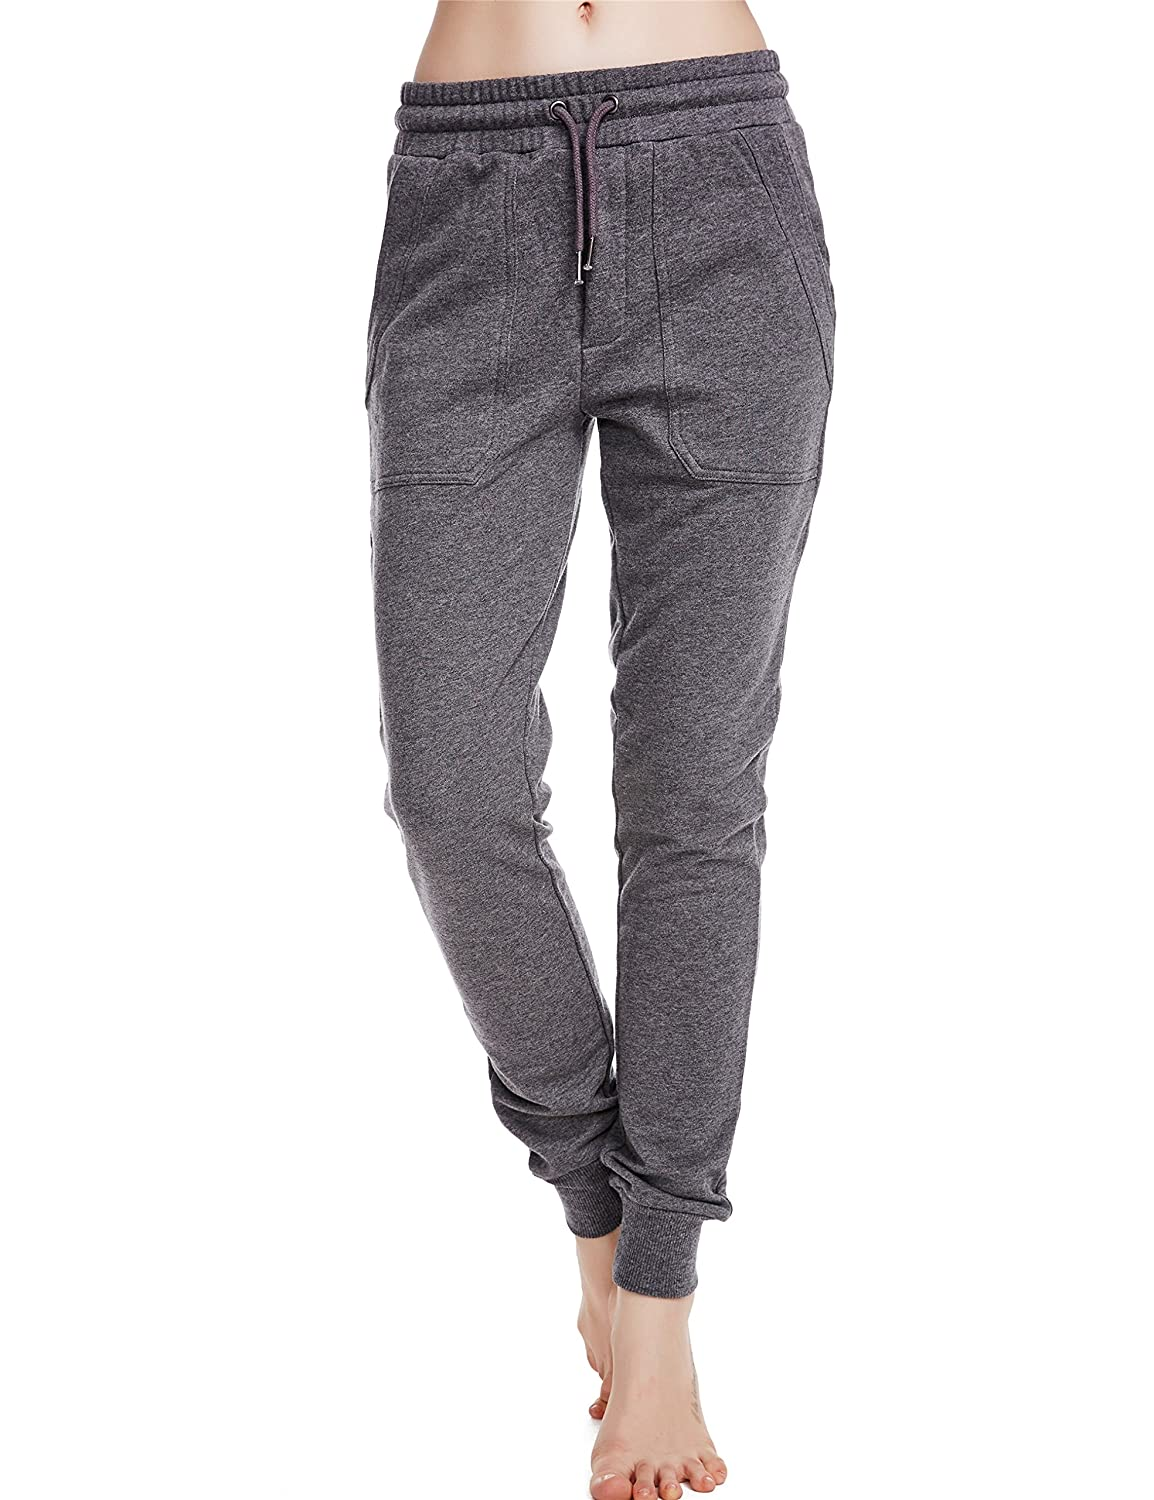 9b54e9a6e5bb3 Amazon.com  icyzone Women Sweatpants Joggers Activewear Workout Running Pants  with Pockets  Clothing